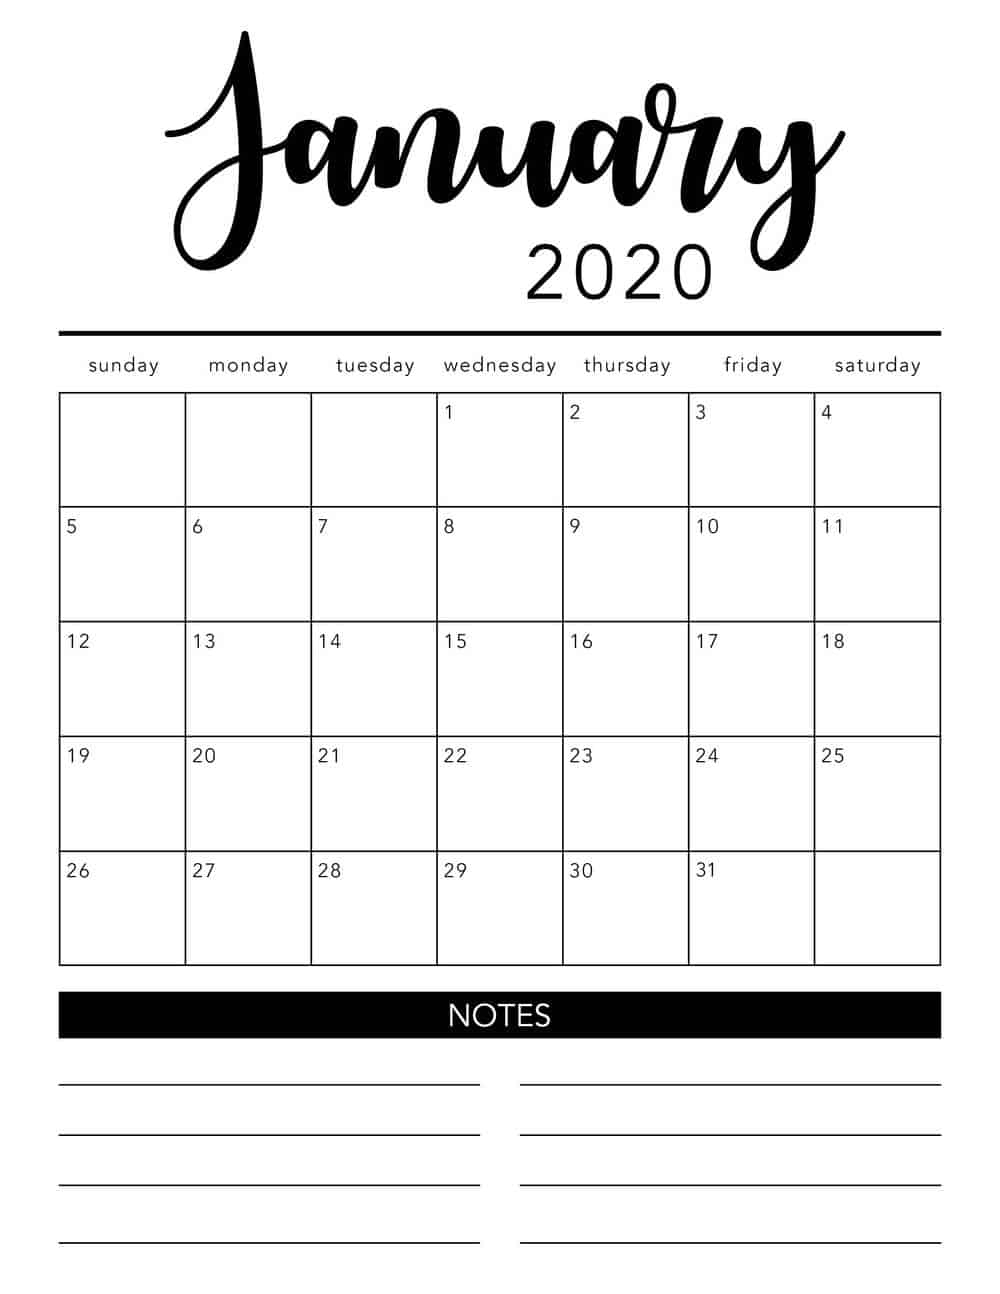 Free 2020 Printable Calendar Template (2 Colors!) - I Heart intended for Free Printable 2020 Calendars-Monthly